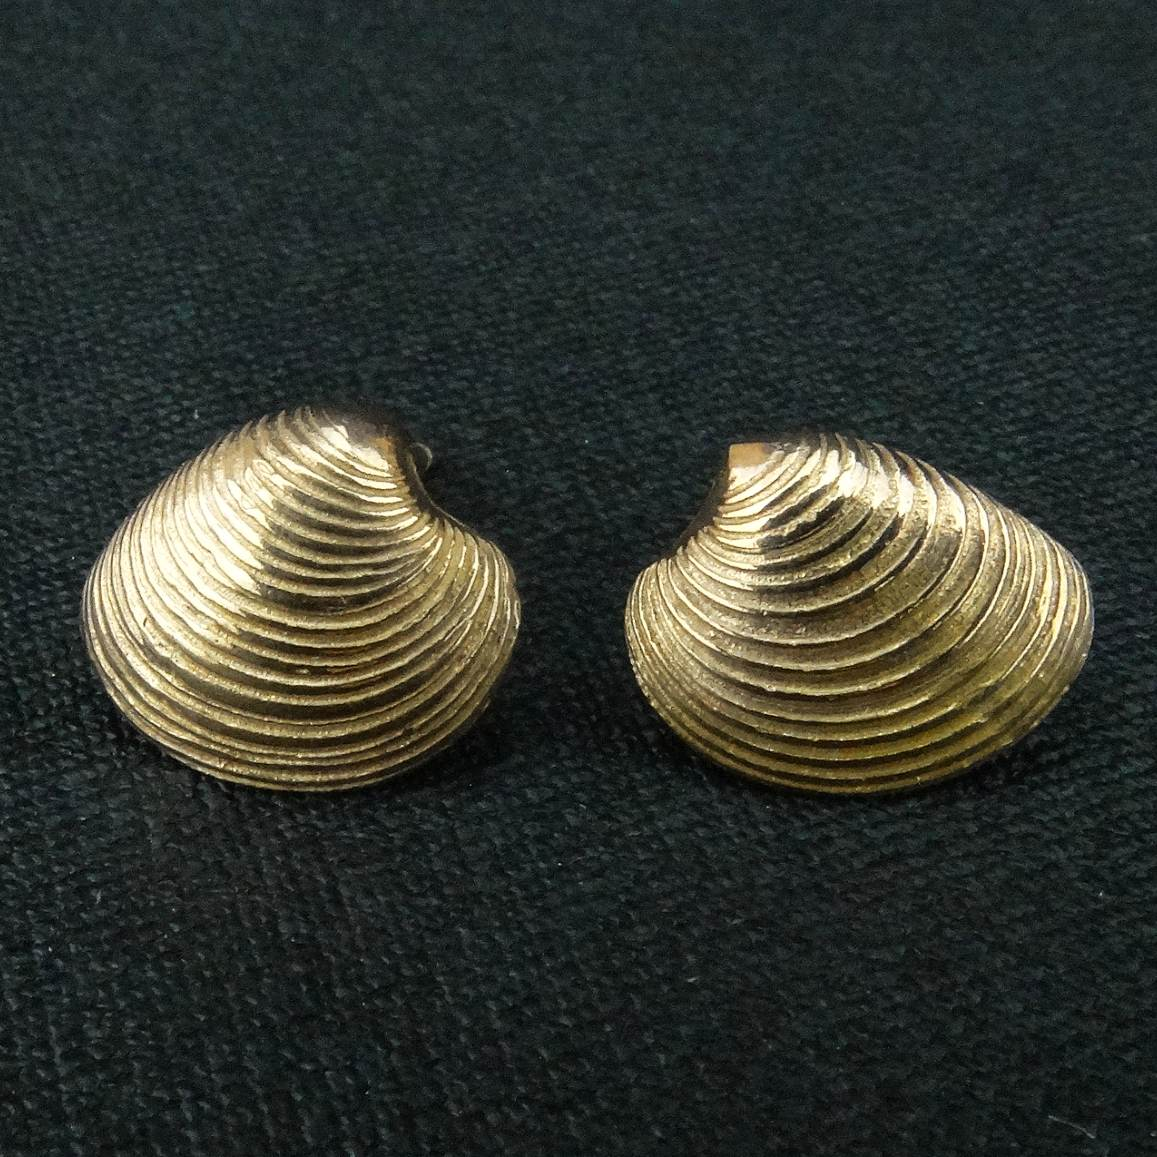 a9b4f0538b6 Rose gold plated Venus shell studs by Karen Thomas - Pyramid Gallery